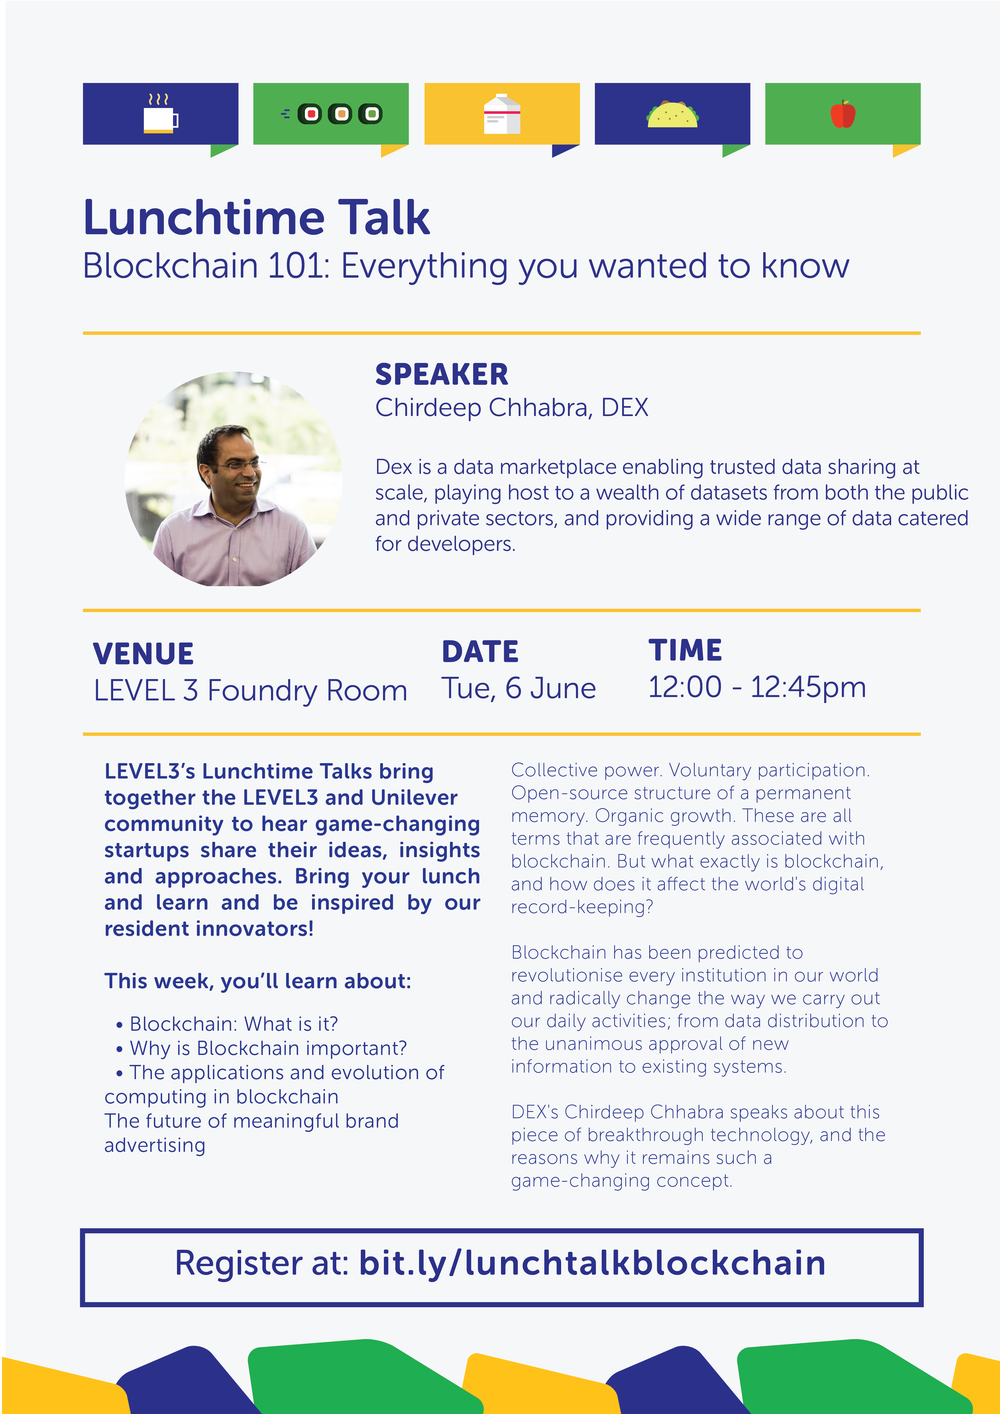 Join us at our Lunchtime Talk series that brings together the LEVEL3 and Unilever community to hear innovative startups share their ideas, insights and approaches. Bring your own lunch and learn with us and be inspired by our resident innovators